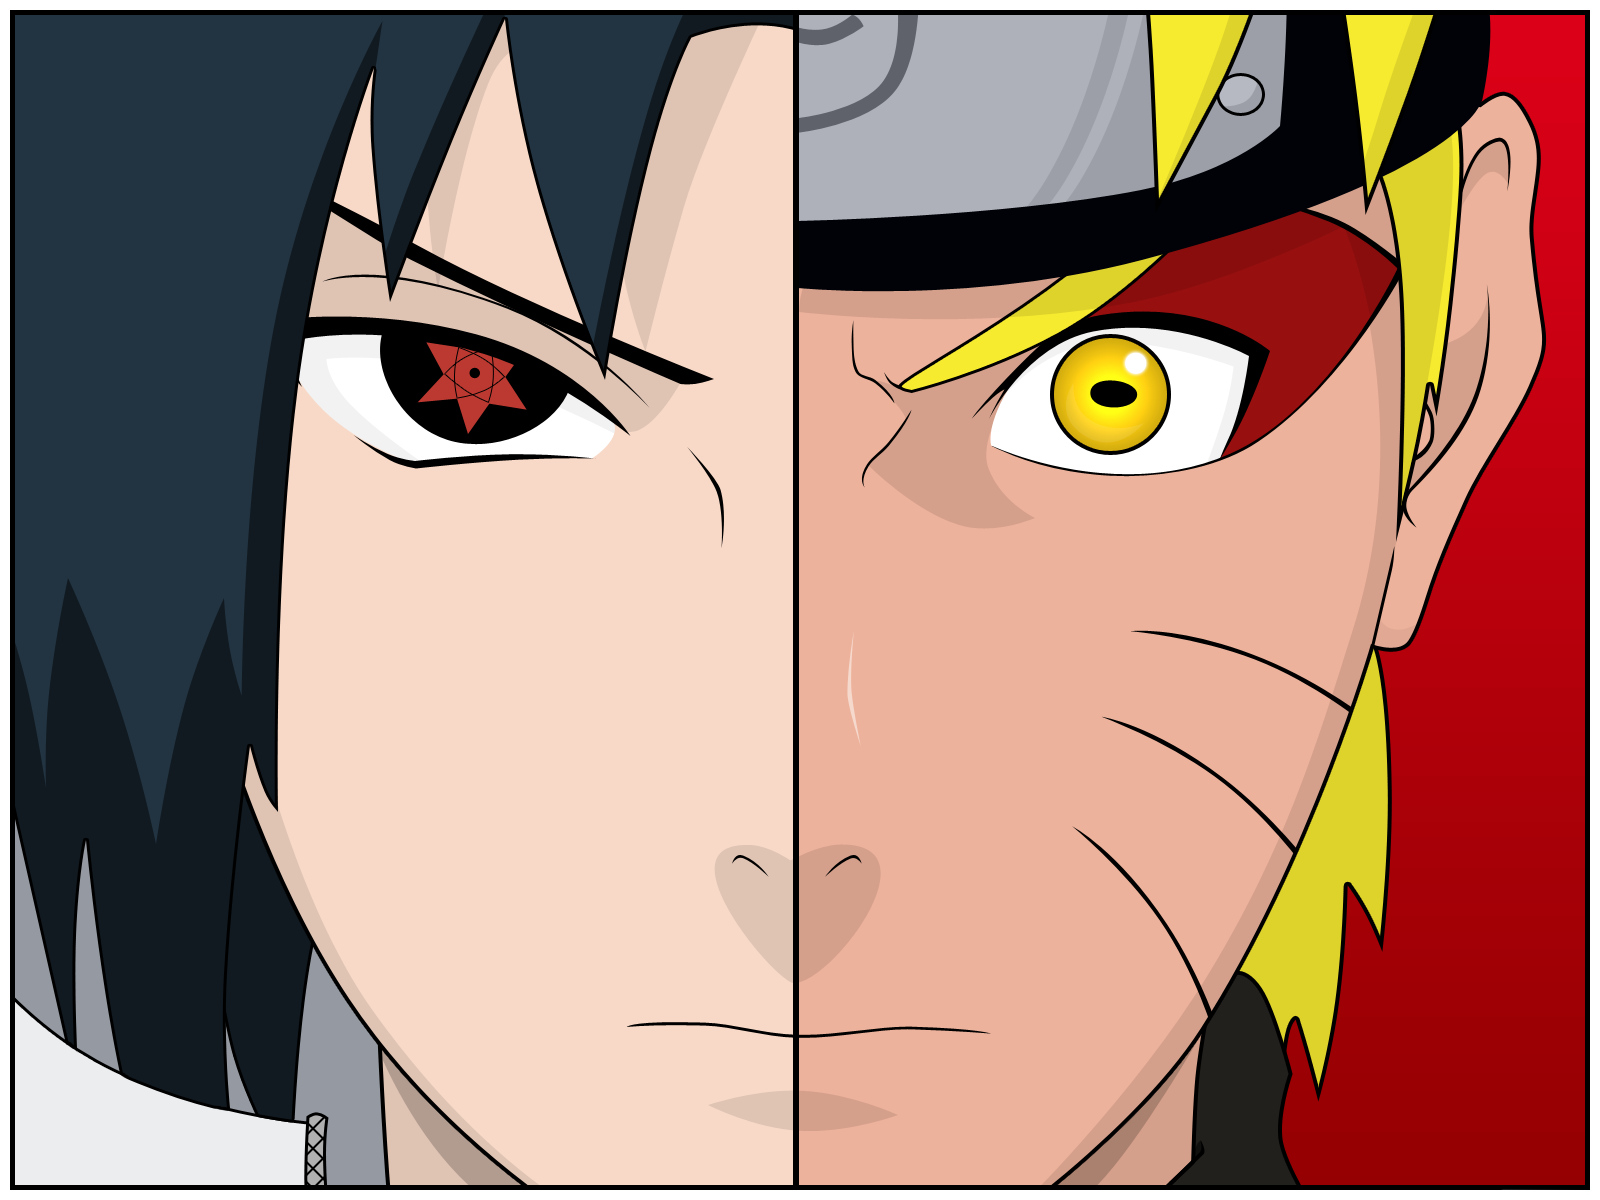 sharingan uzumaki naruto - photo #9